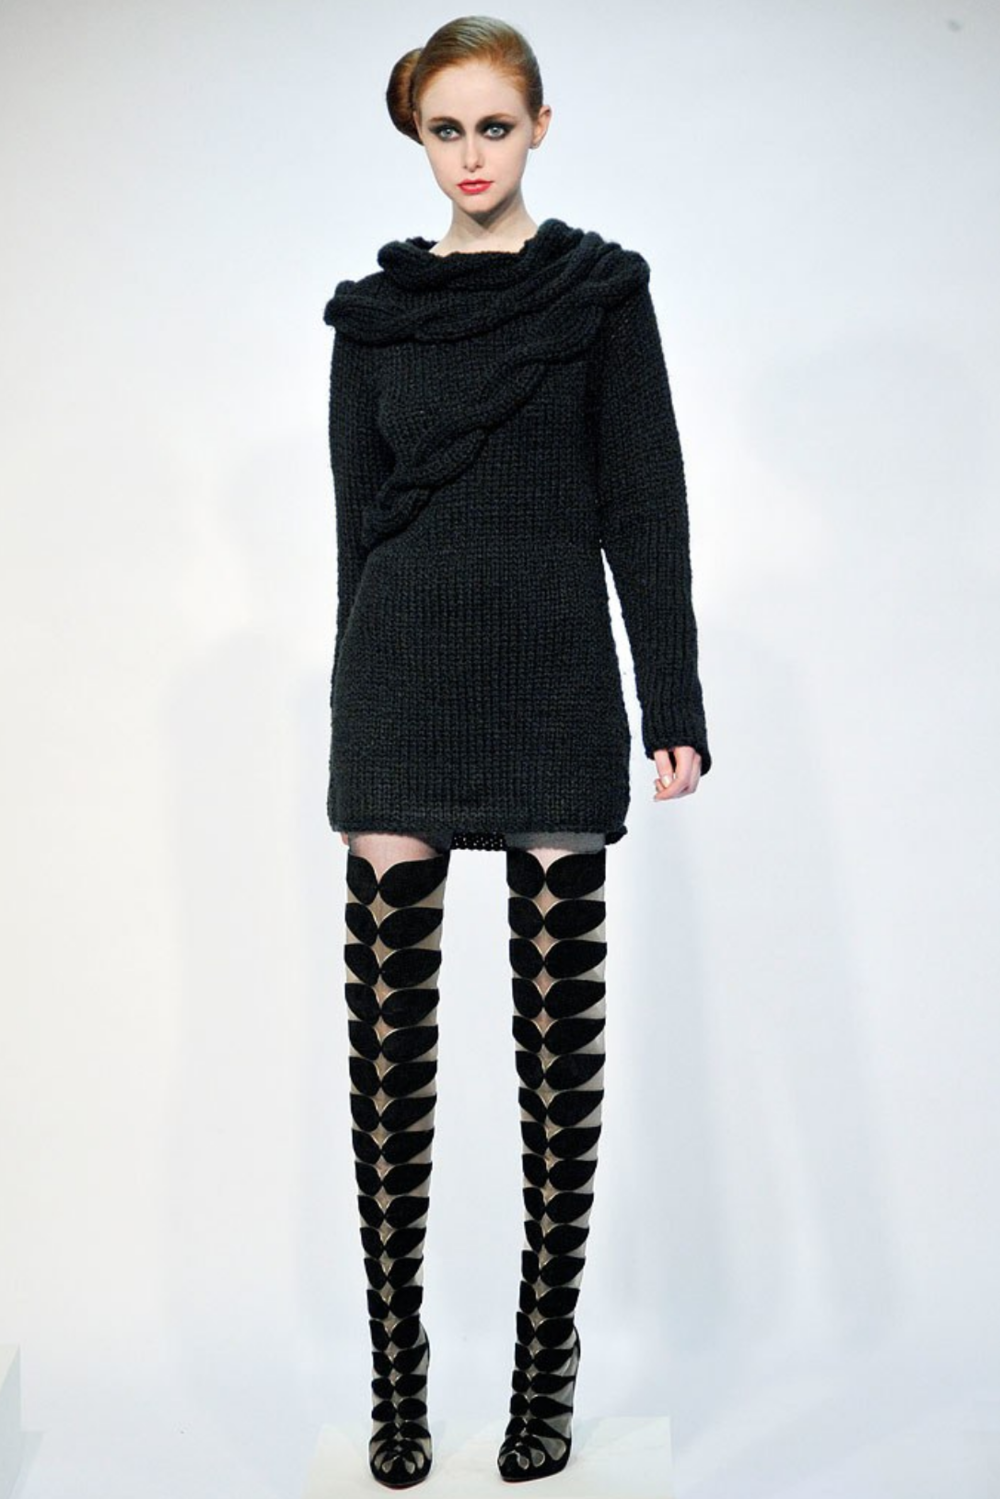 Stephen Burrows Fall 2010